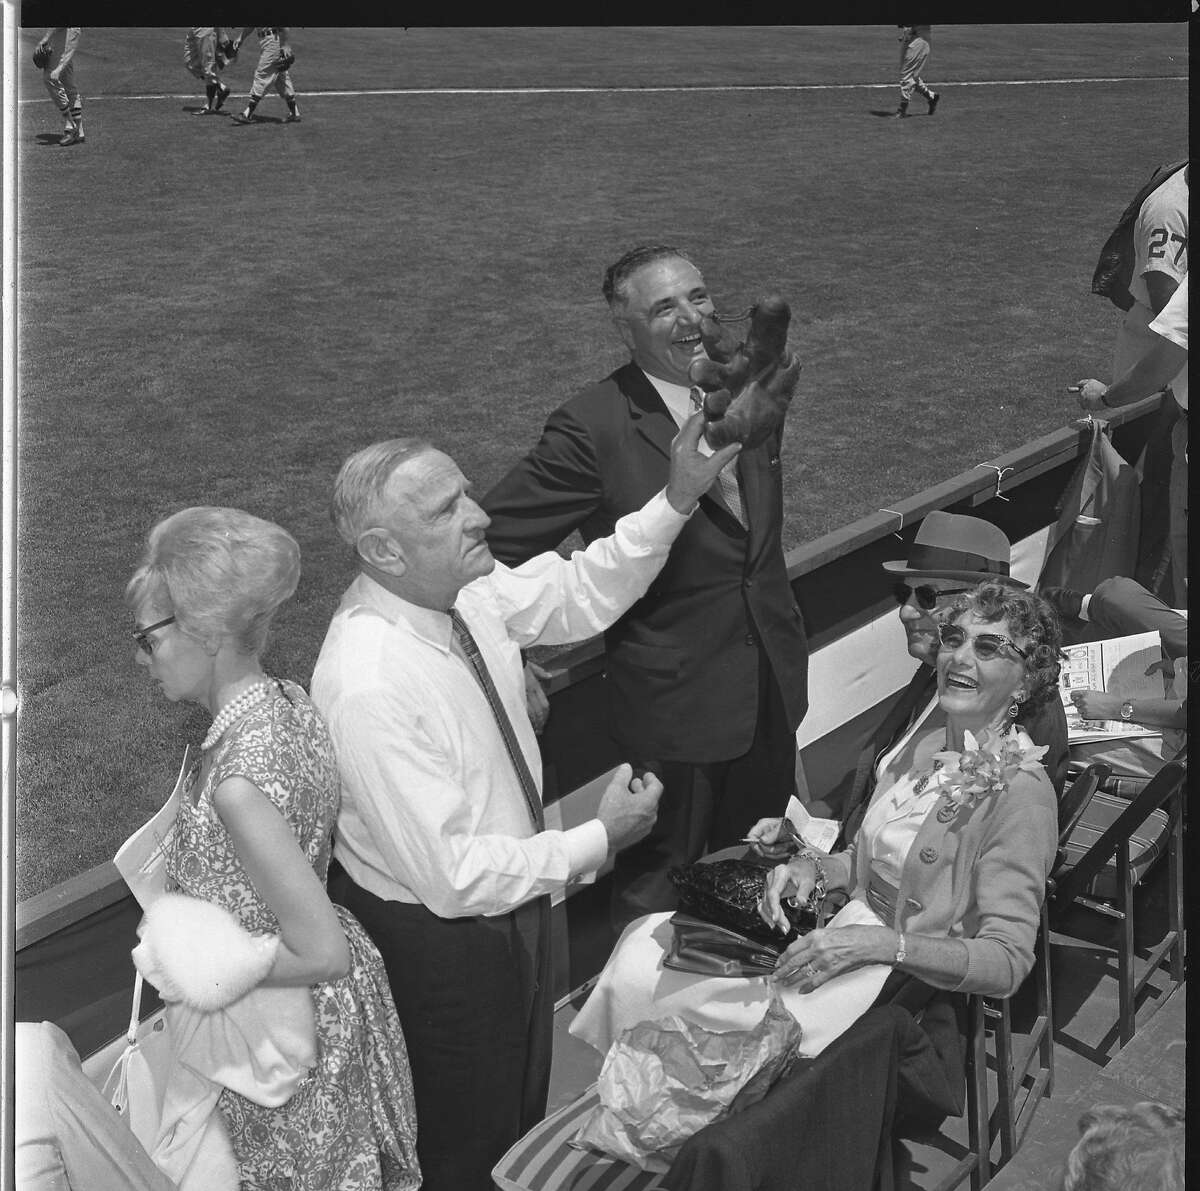 Casey Stengel and Mayor George Christopher at the 1961 All-Star game at Candlestick Park Stengel would throw out the first pitch